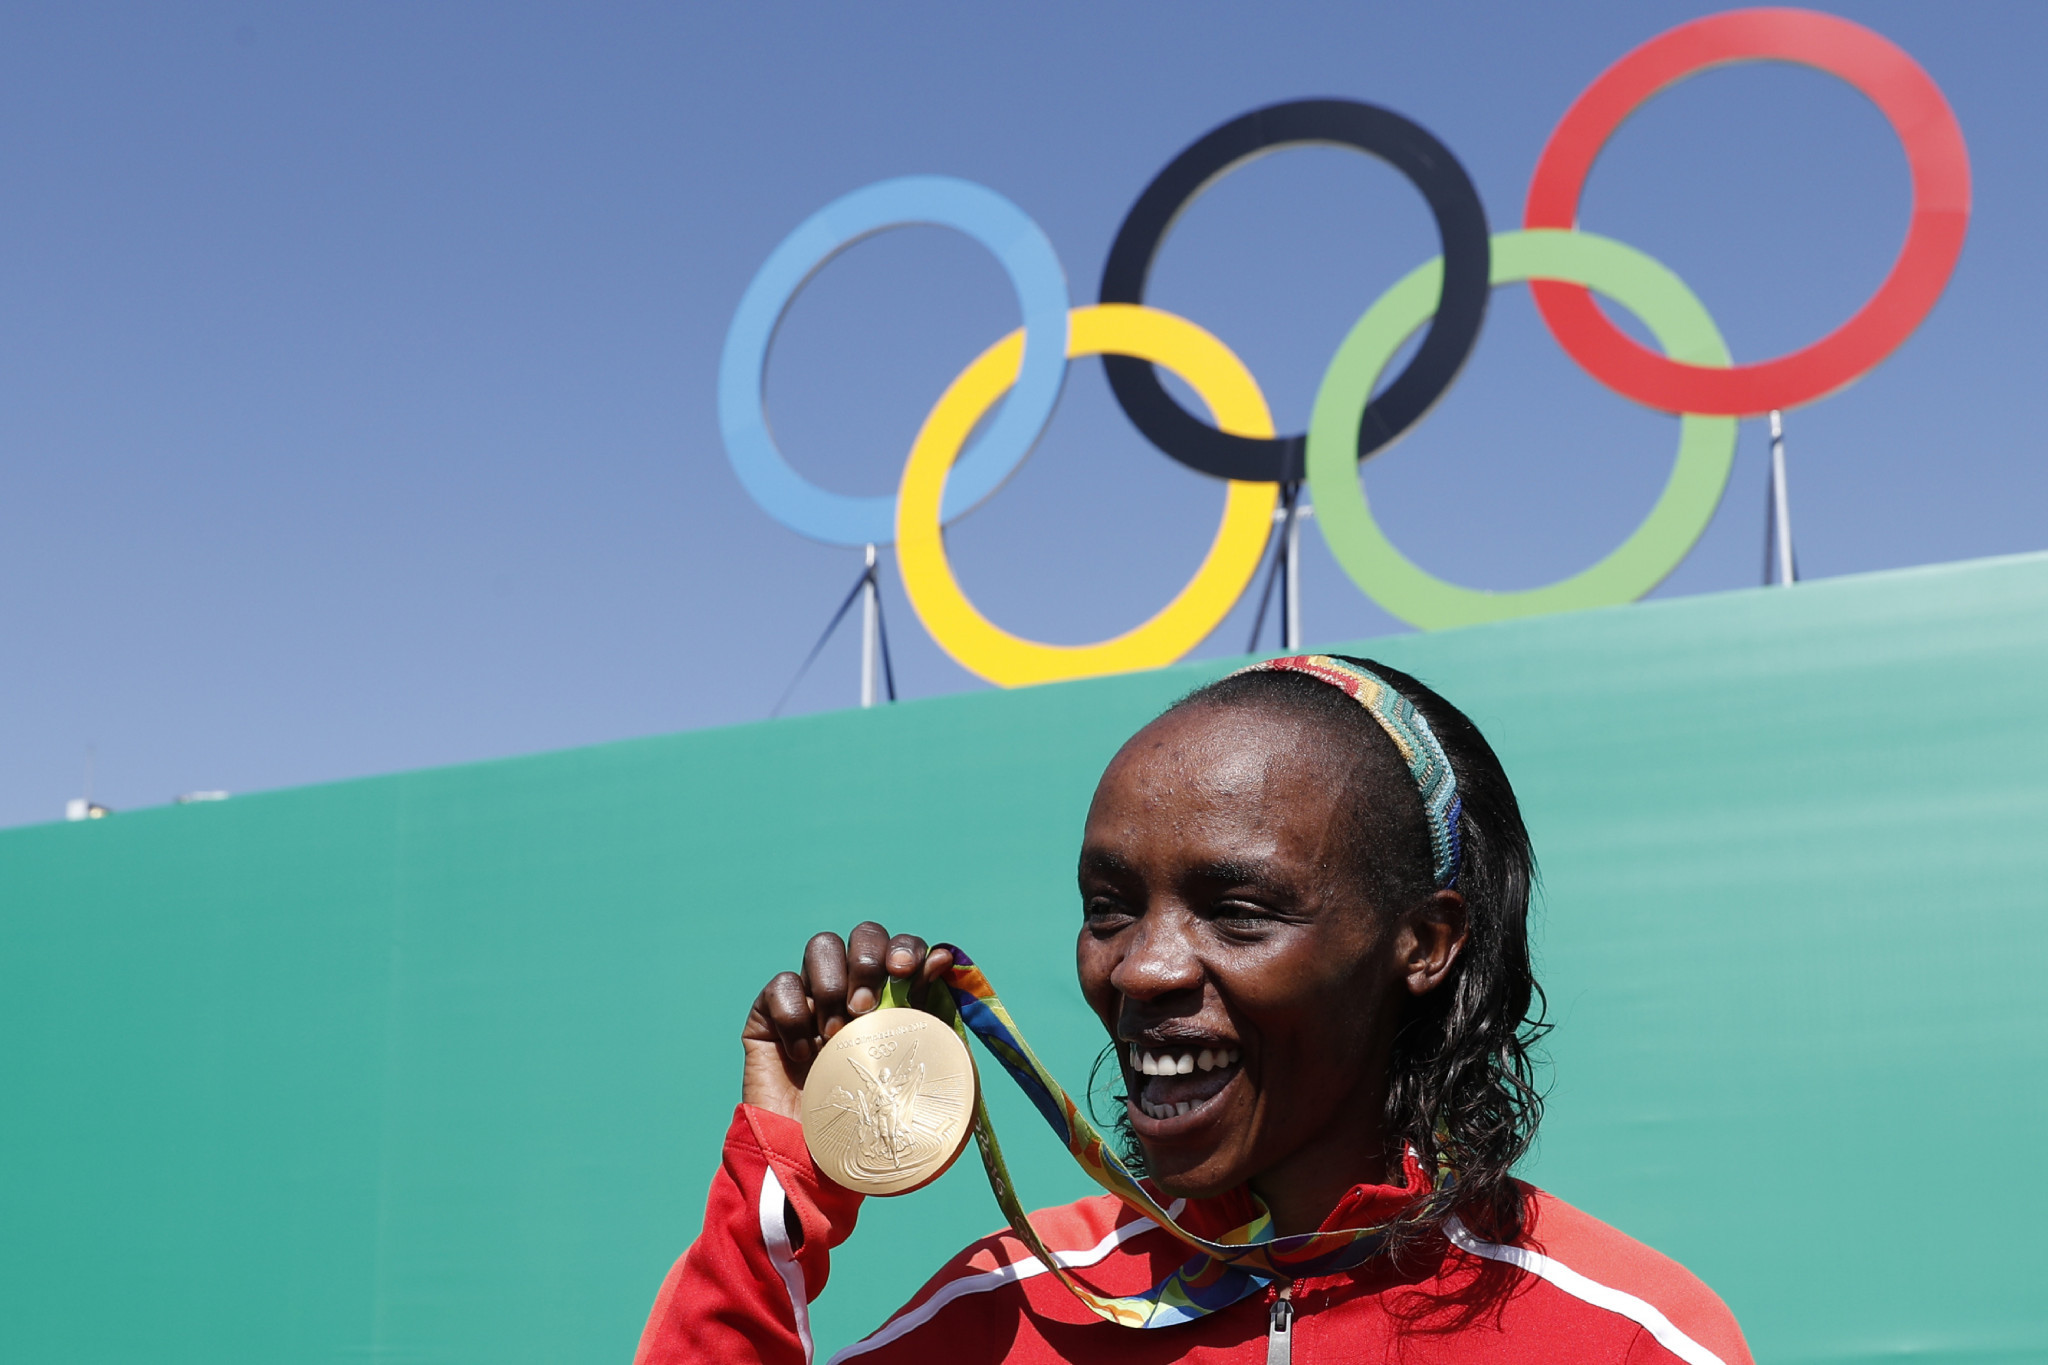 Kenya are aiming to send a clean team to Tokyo 2020, with a number of their athletes, including Rio 2016 Olympic marathon champion Jemima Sumgong, currently serving doping bans ©Getty Images